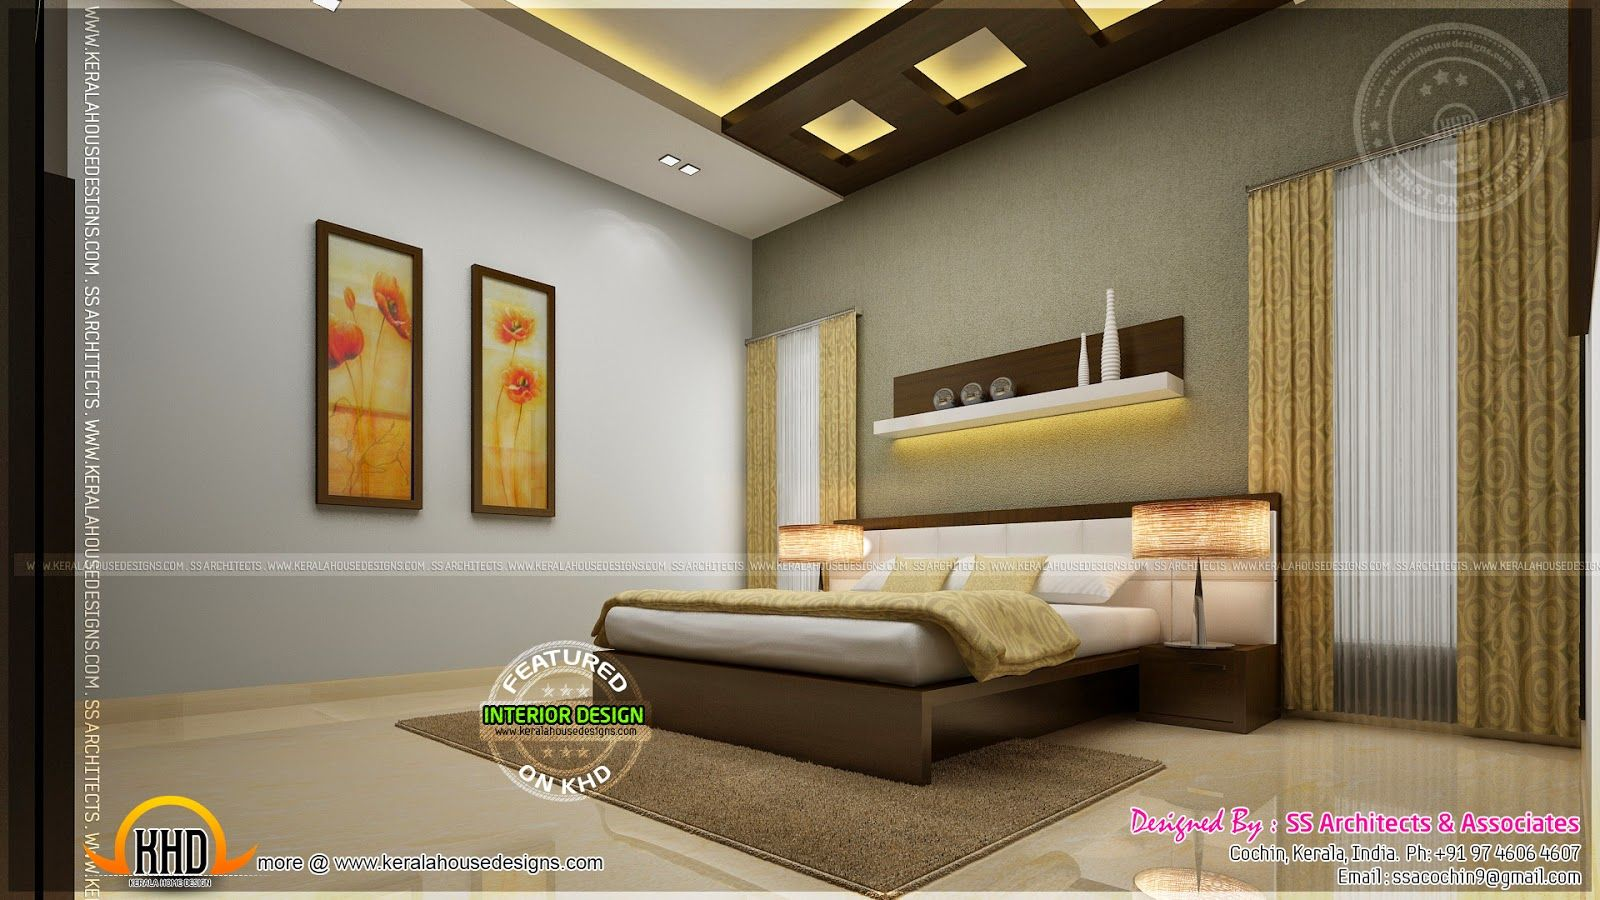 Indian master bedroom interior design google search for Interior designs in india